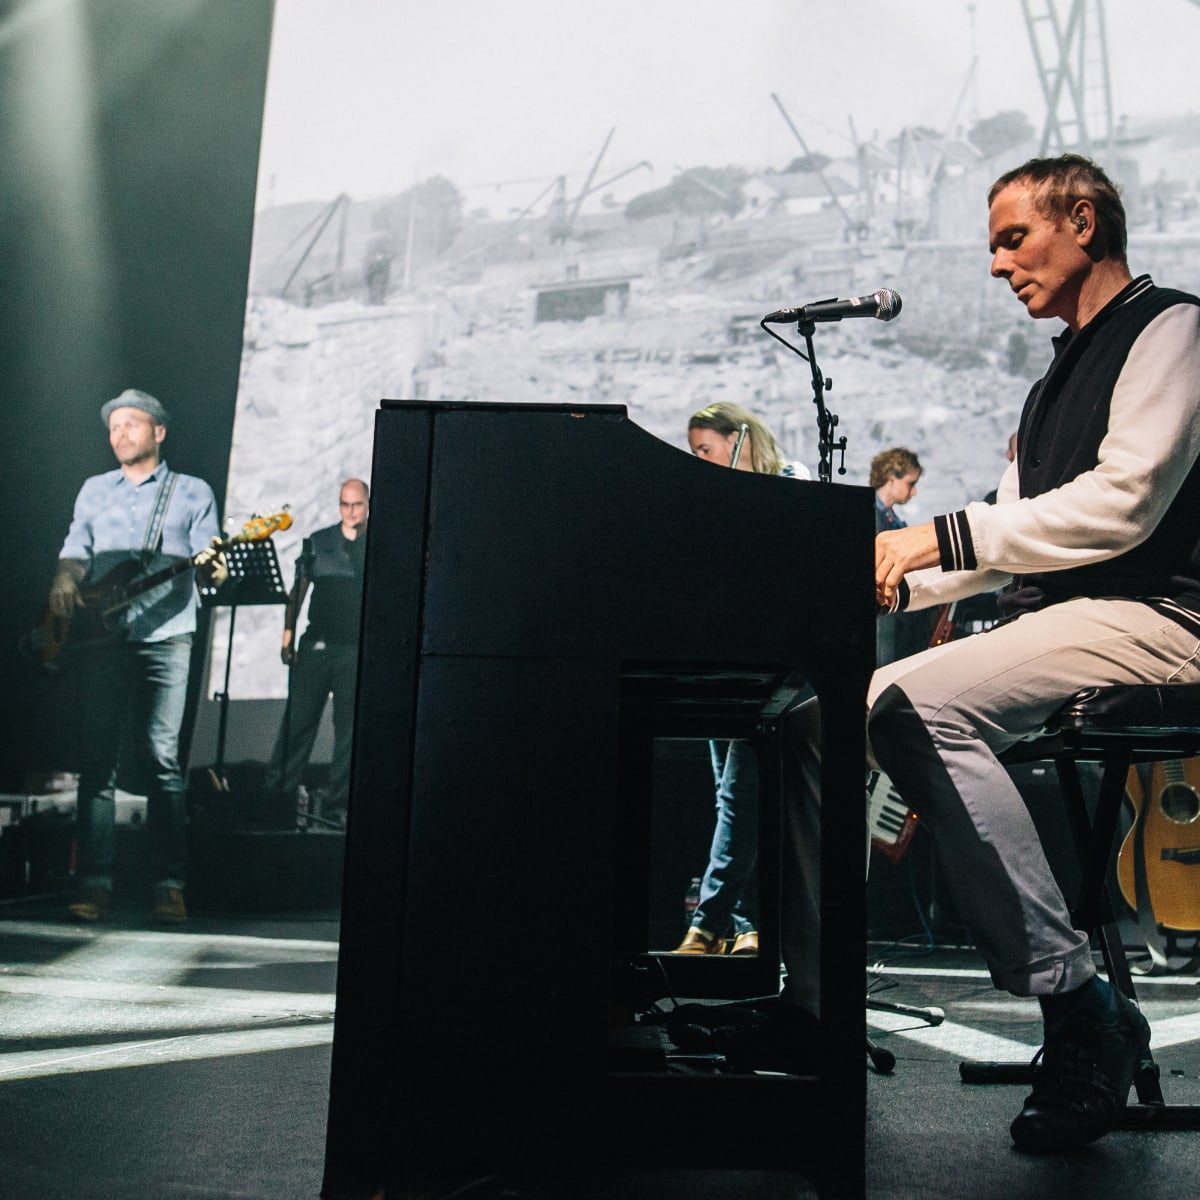 Belle and Sebastian at ACL Live in Austin August 2015